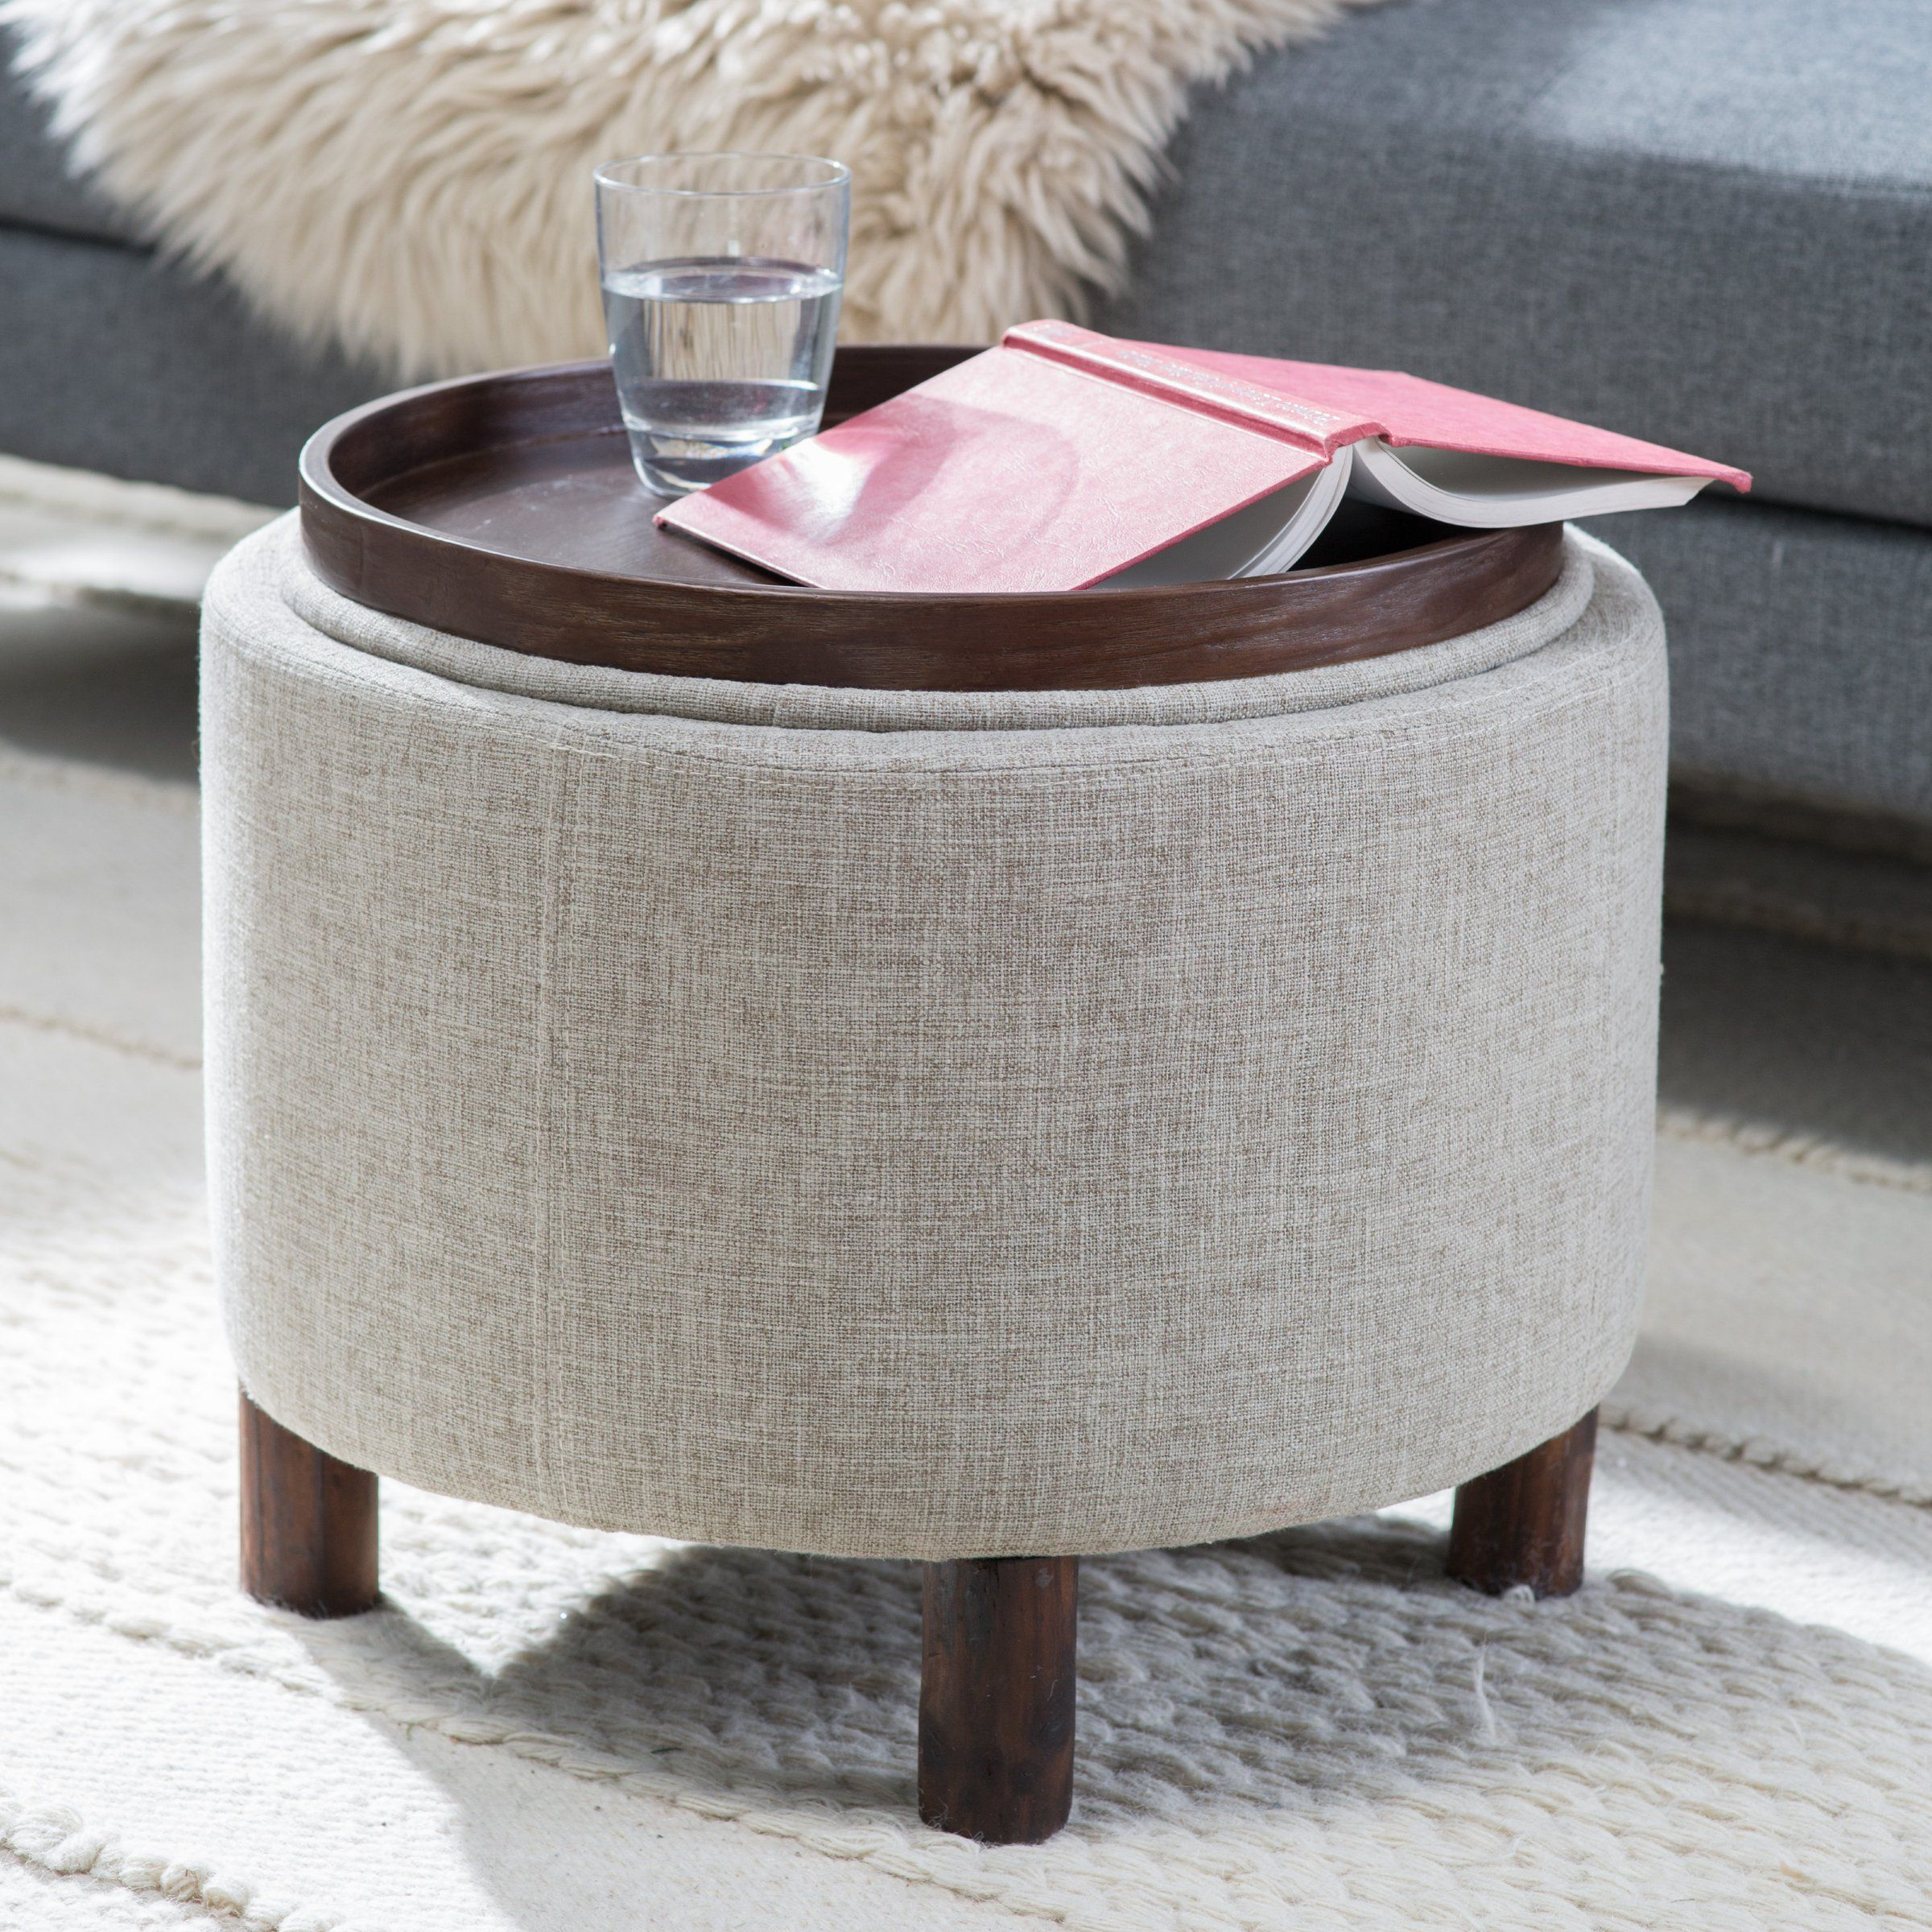 Belham Living Ingram Round Storage Ottoman With Tail Tray Ottomans At Hayneedle